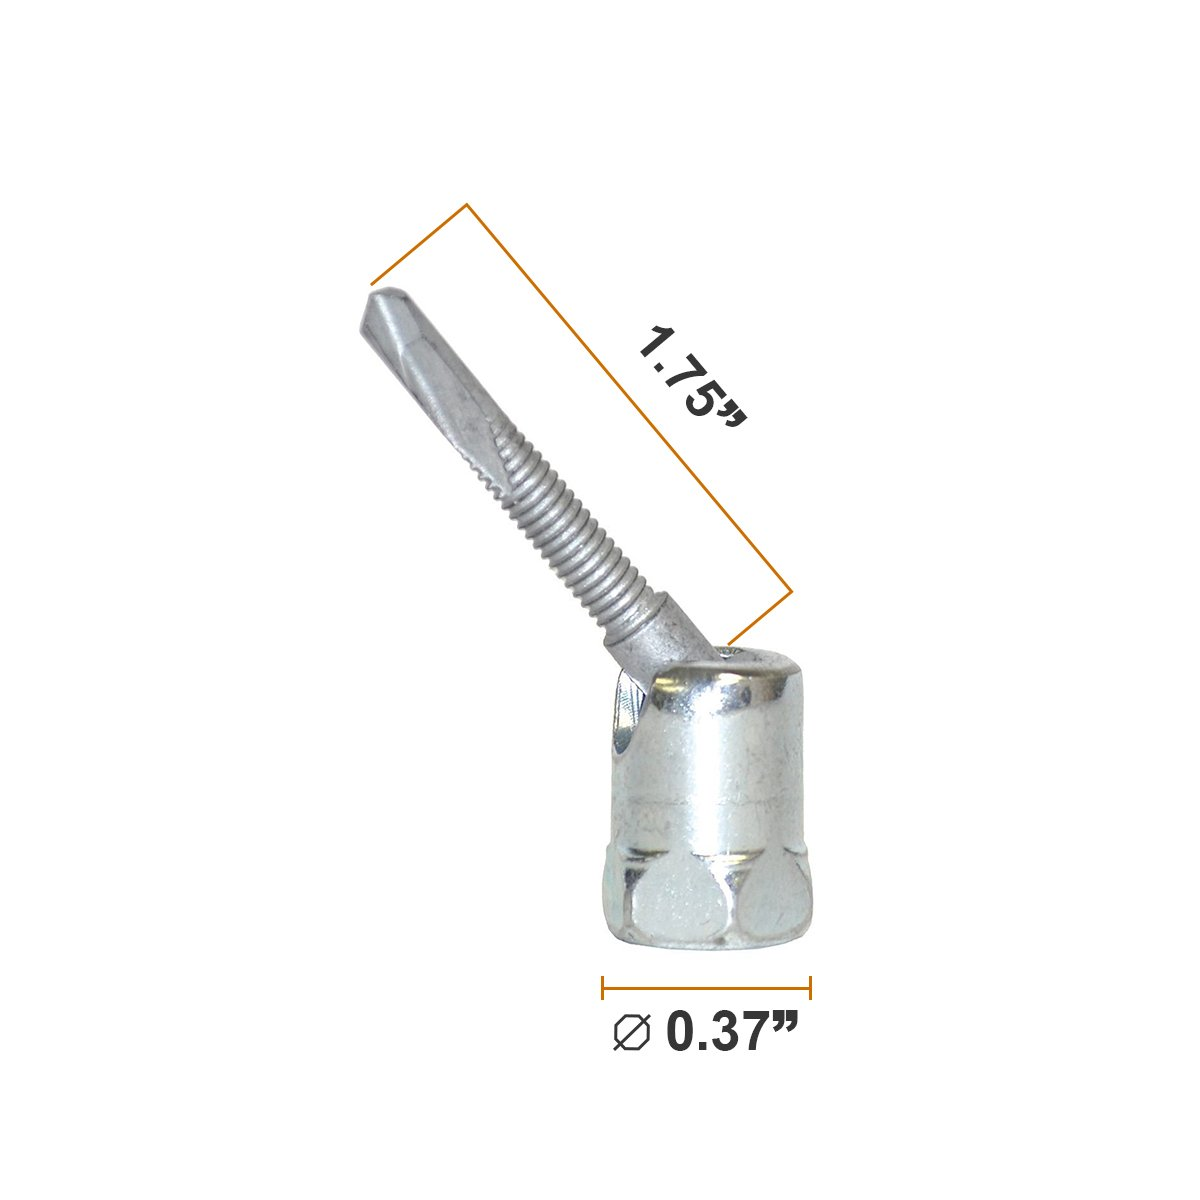 Steel Electro-Zinc Finish - Installs Vertically /& Swivels up to 17 Degree No-Predrilling Required Pack of 50 Everflow Sammys 8268957-50 SH-TEK 5.0 3//8 inch Screw Swivel Head Designed for Steel Everflow Supplies